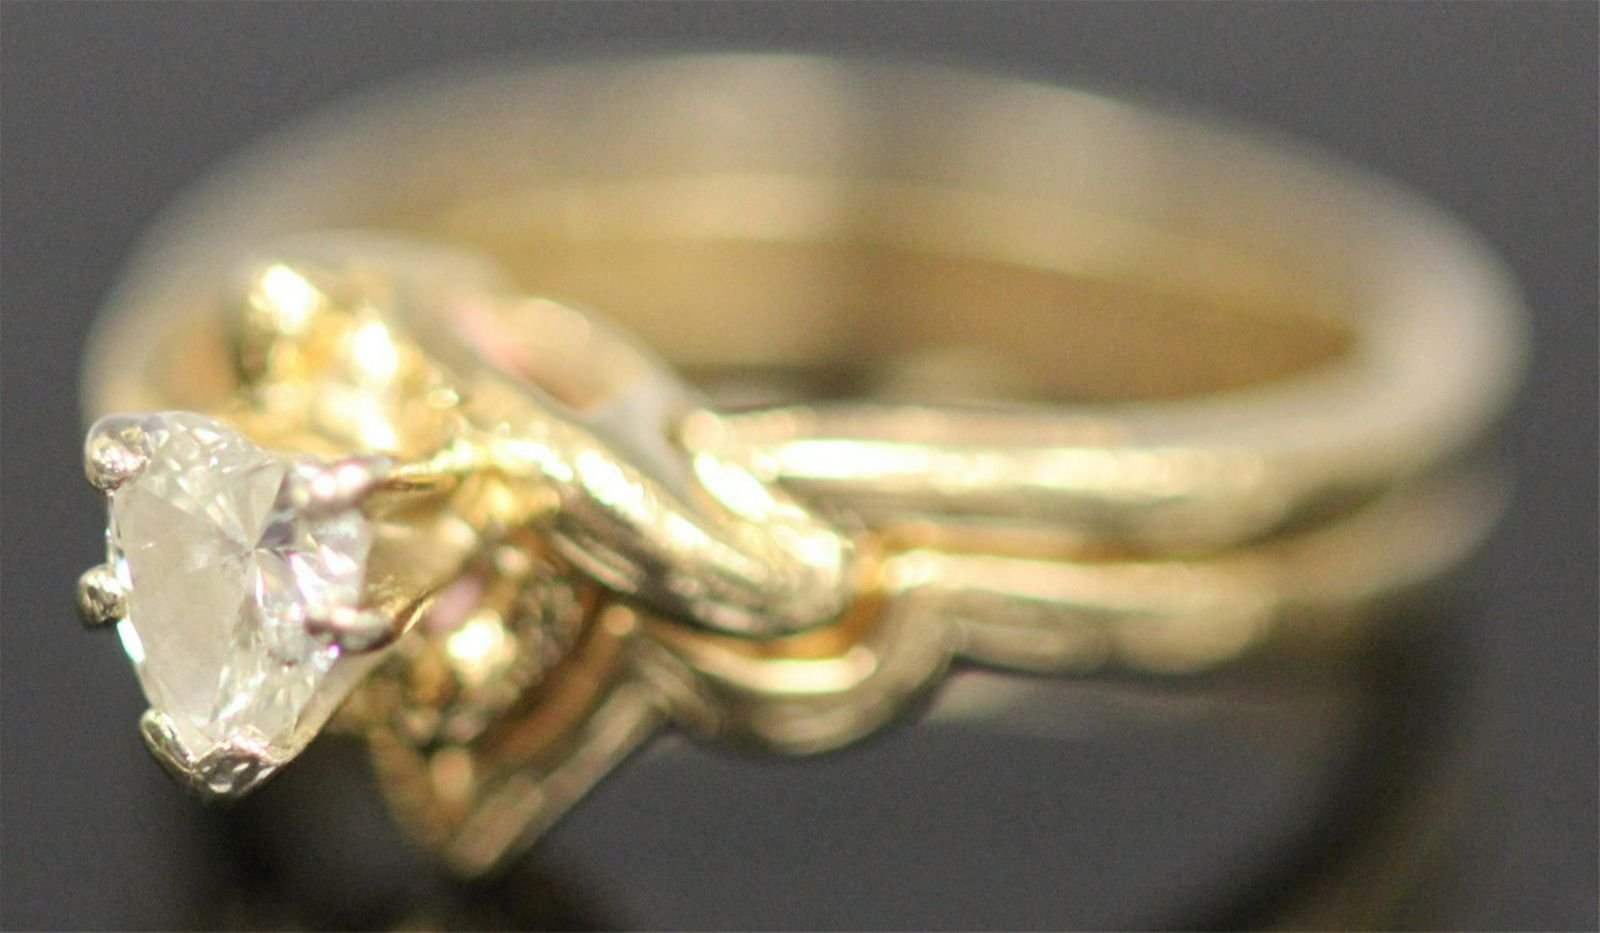 LADY'S DIAMOND SOLITAIRE 14KT YELLOW GOLD RING